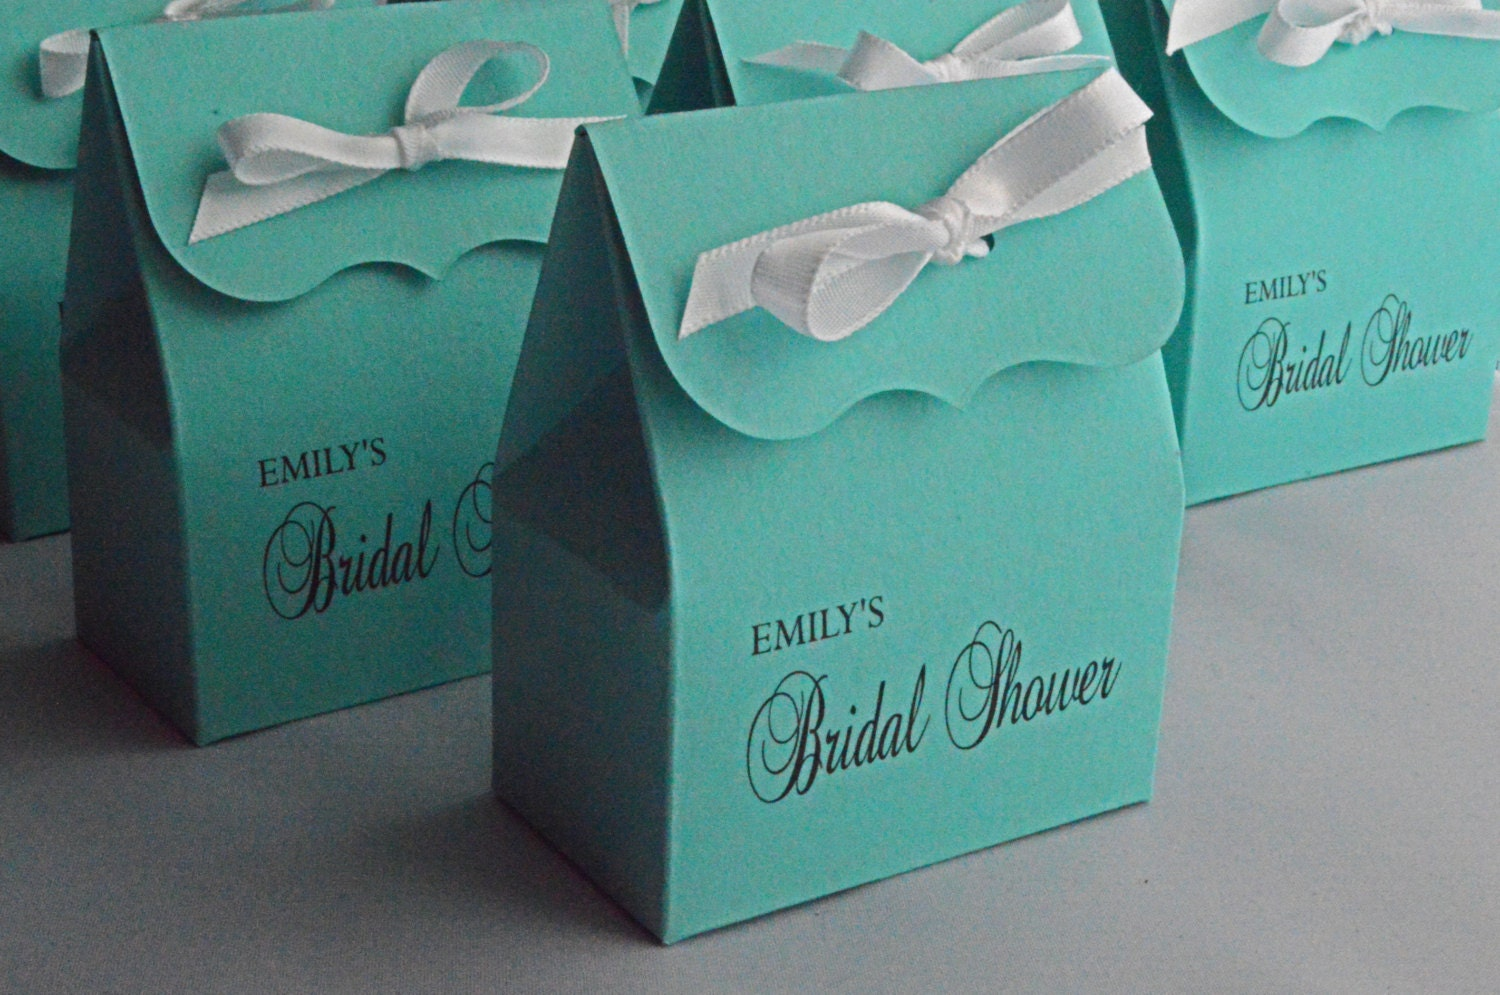 Ideas For Bridal Shower Gift Bags : Bridal Shower Favor Bags in blue with white Ribbon